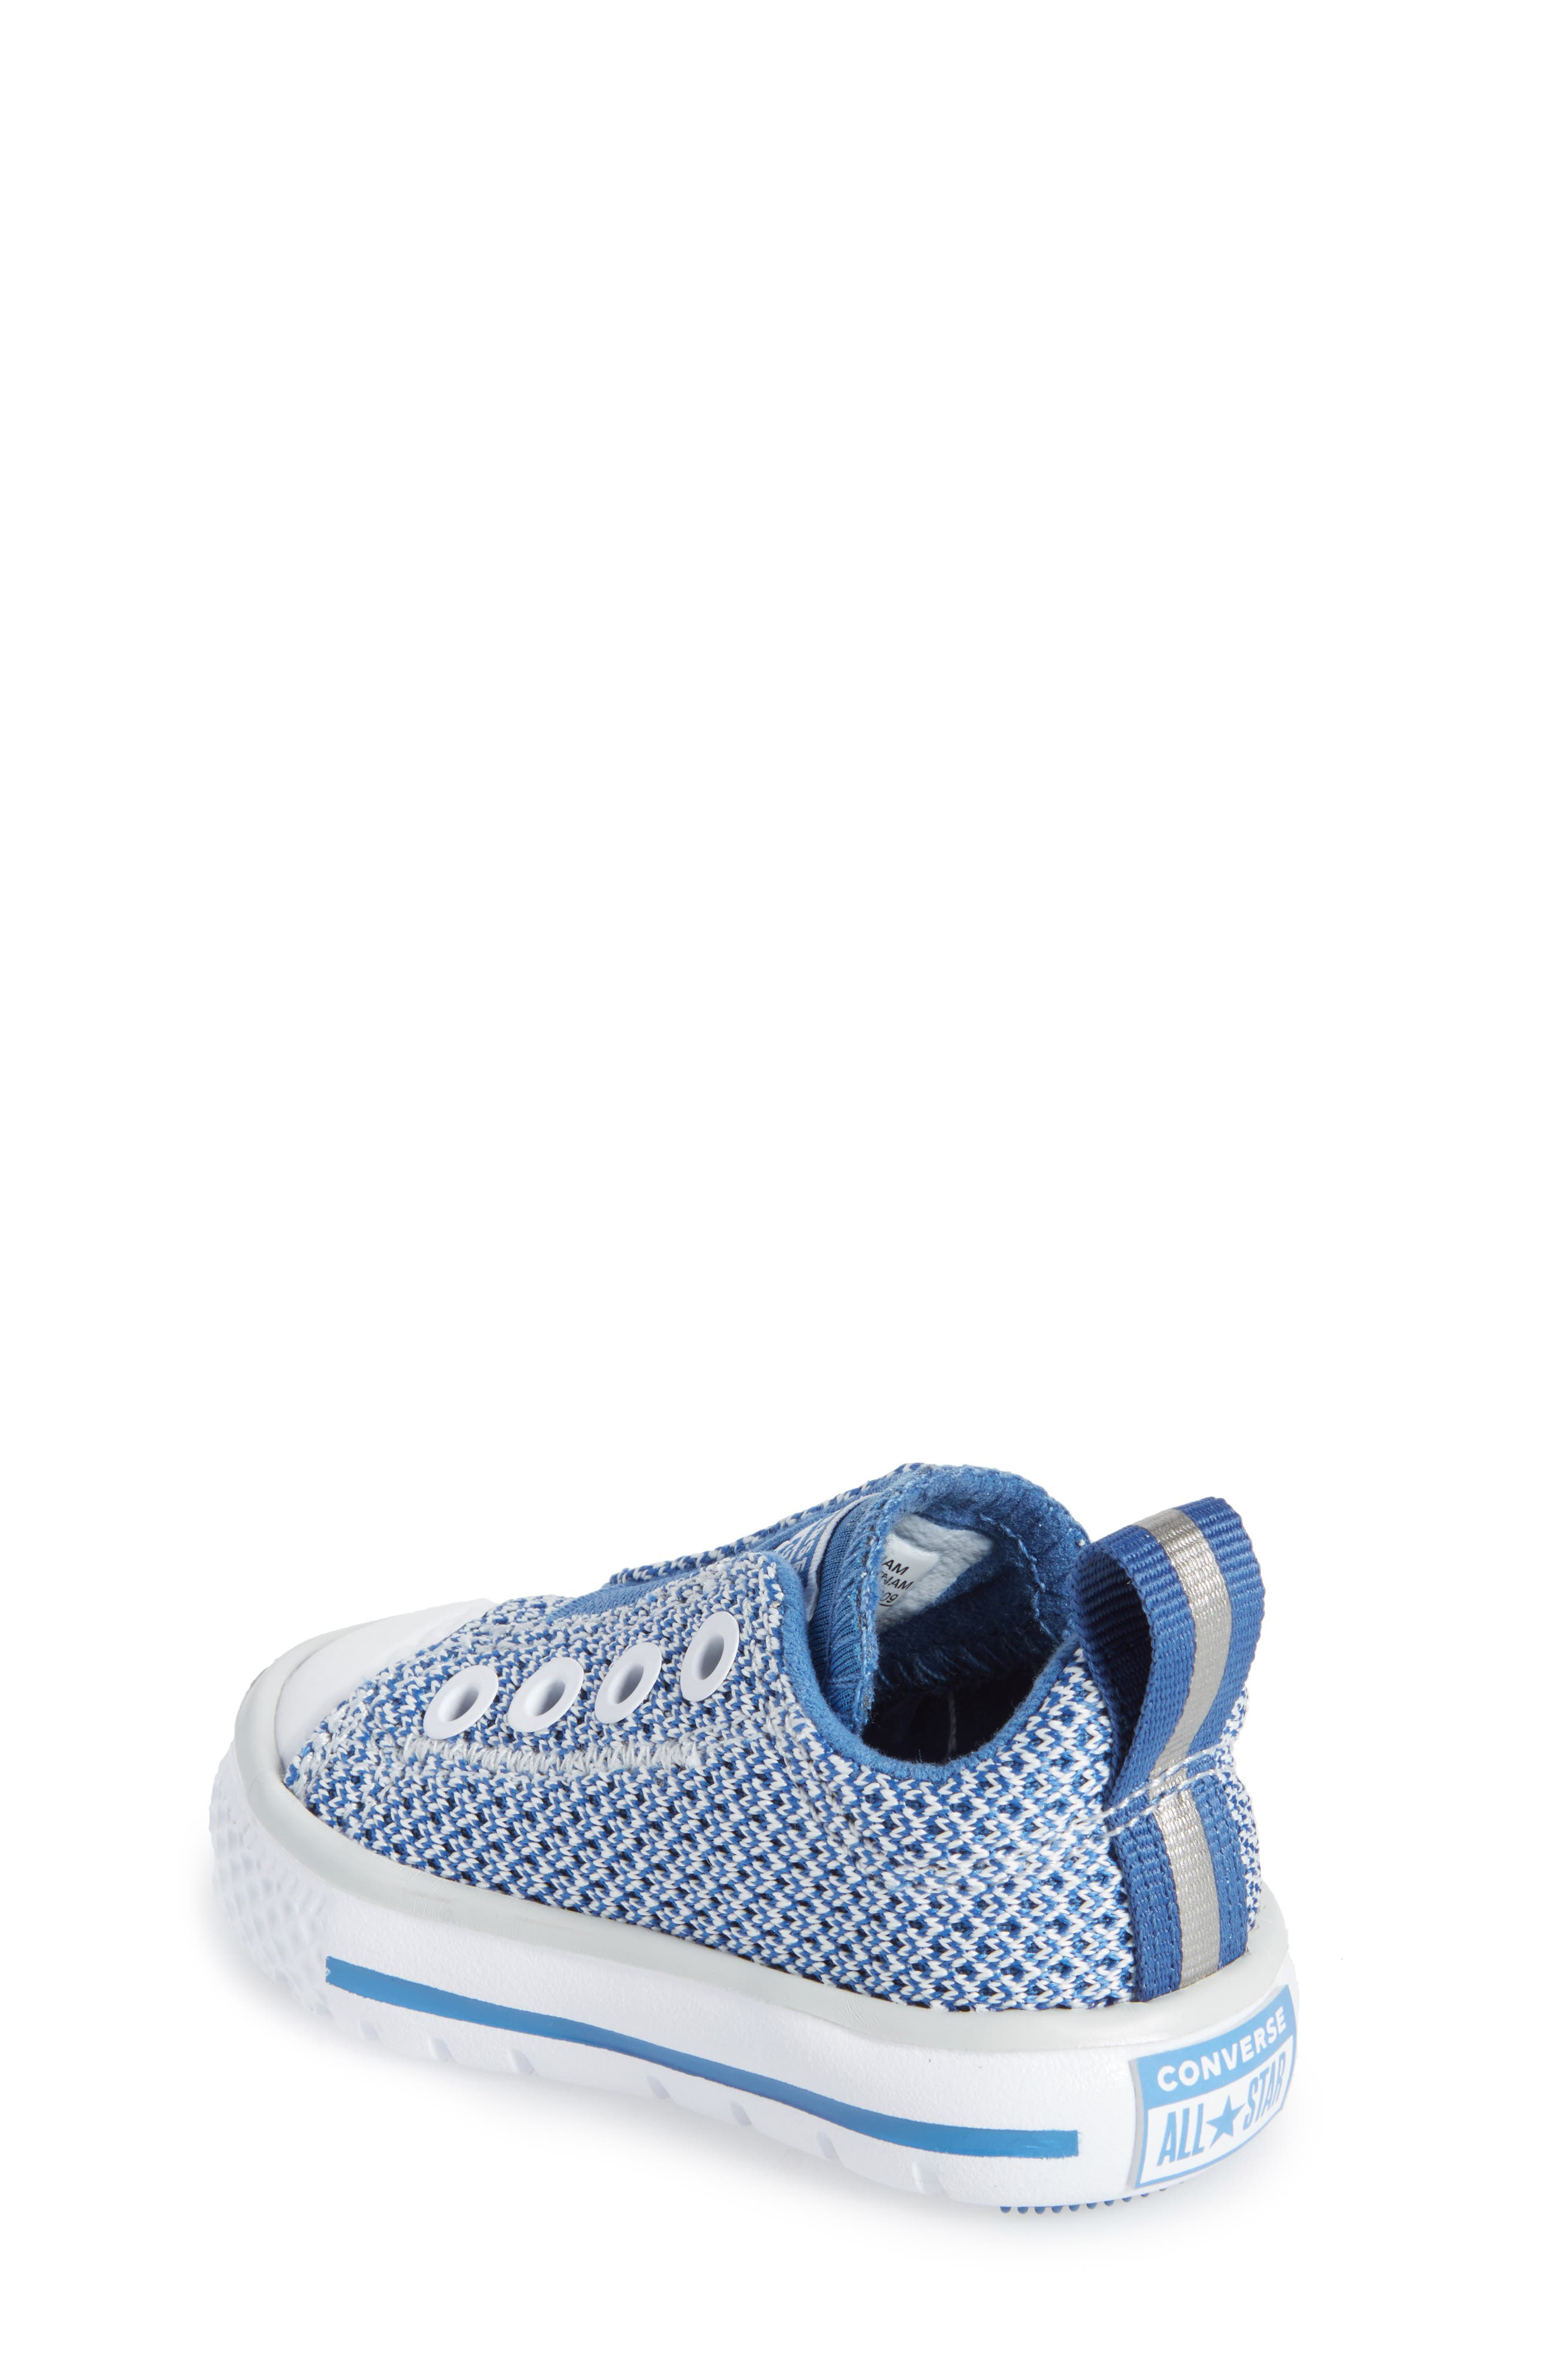 Chuck Taylor<sup>®</sup> All Star<sup>®</sup> Hyper Lite Slip-On Sneaker,                             Alternate thumbnail 2, color,                             020